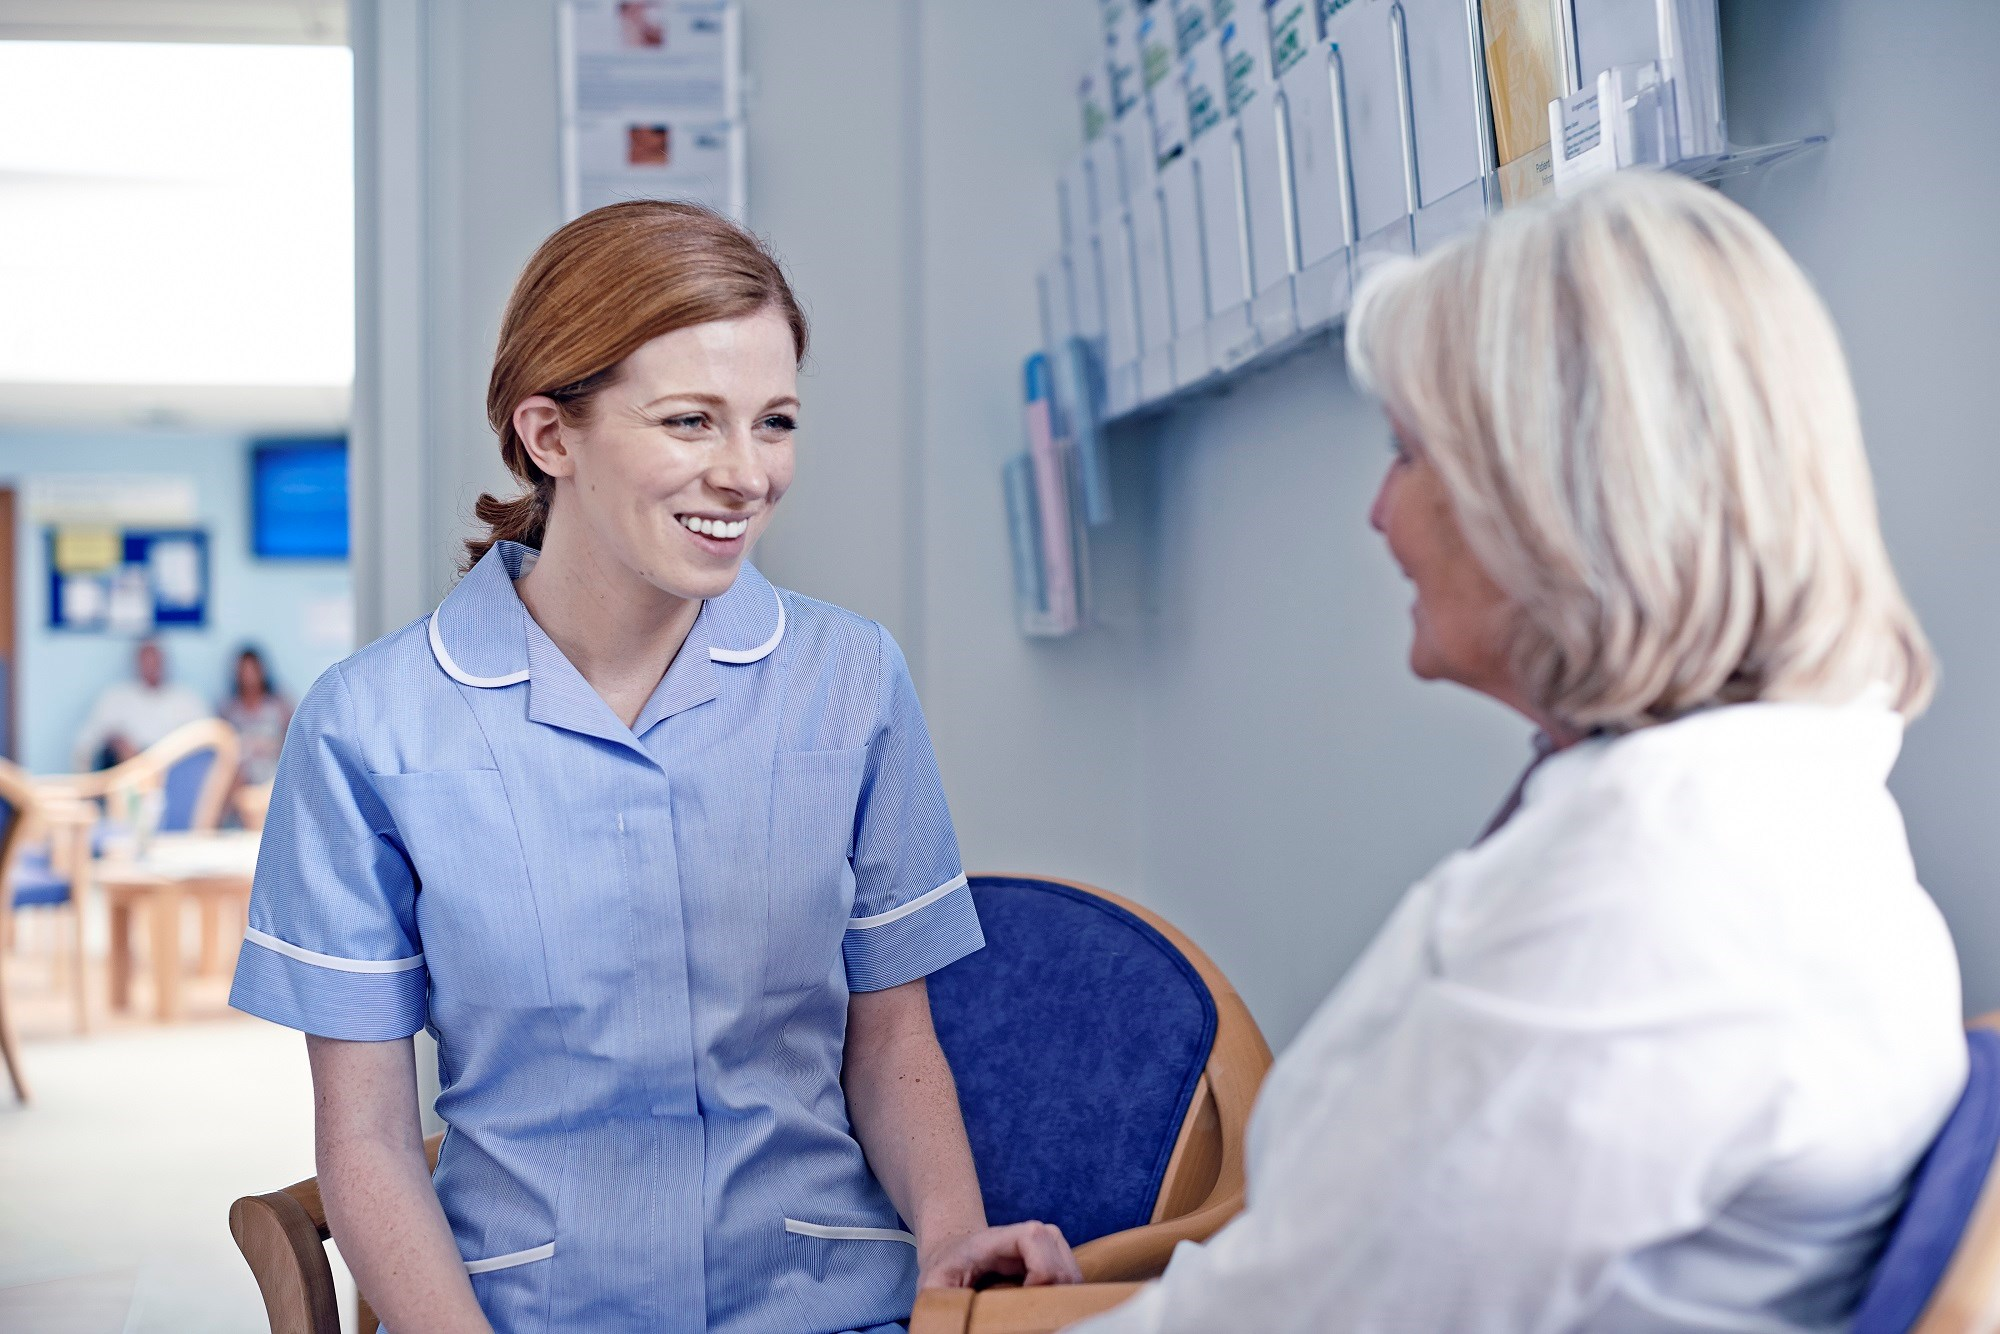 A patient experience officer is an increasingly important new role in physician practices.